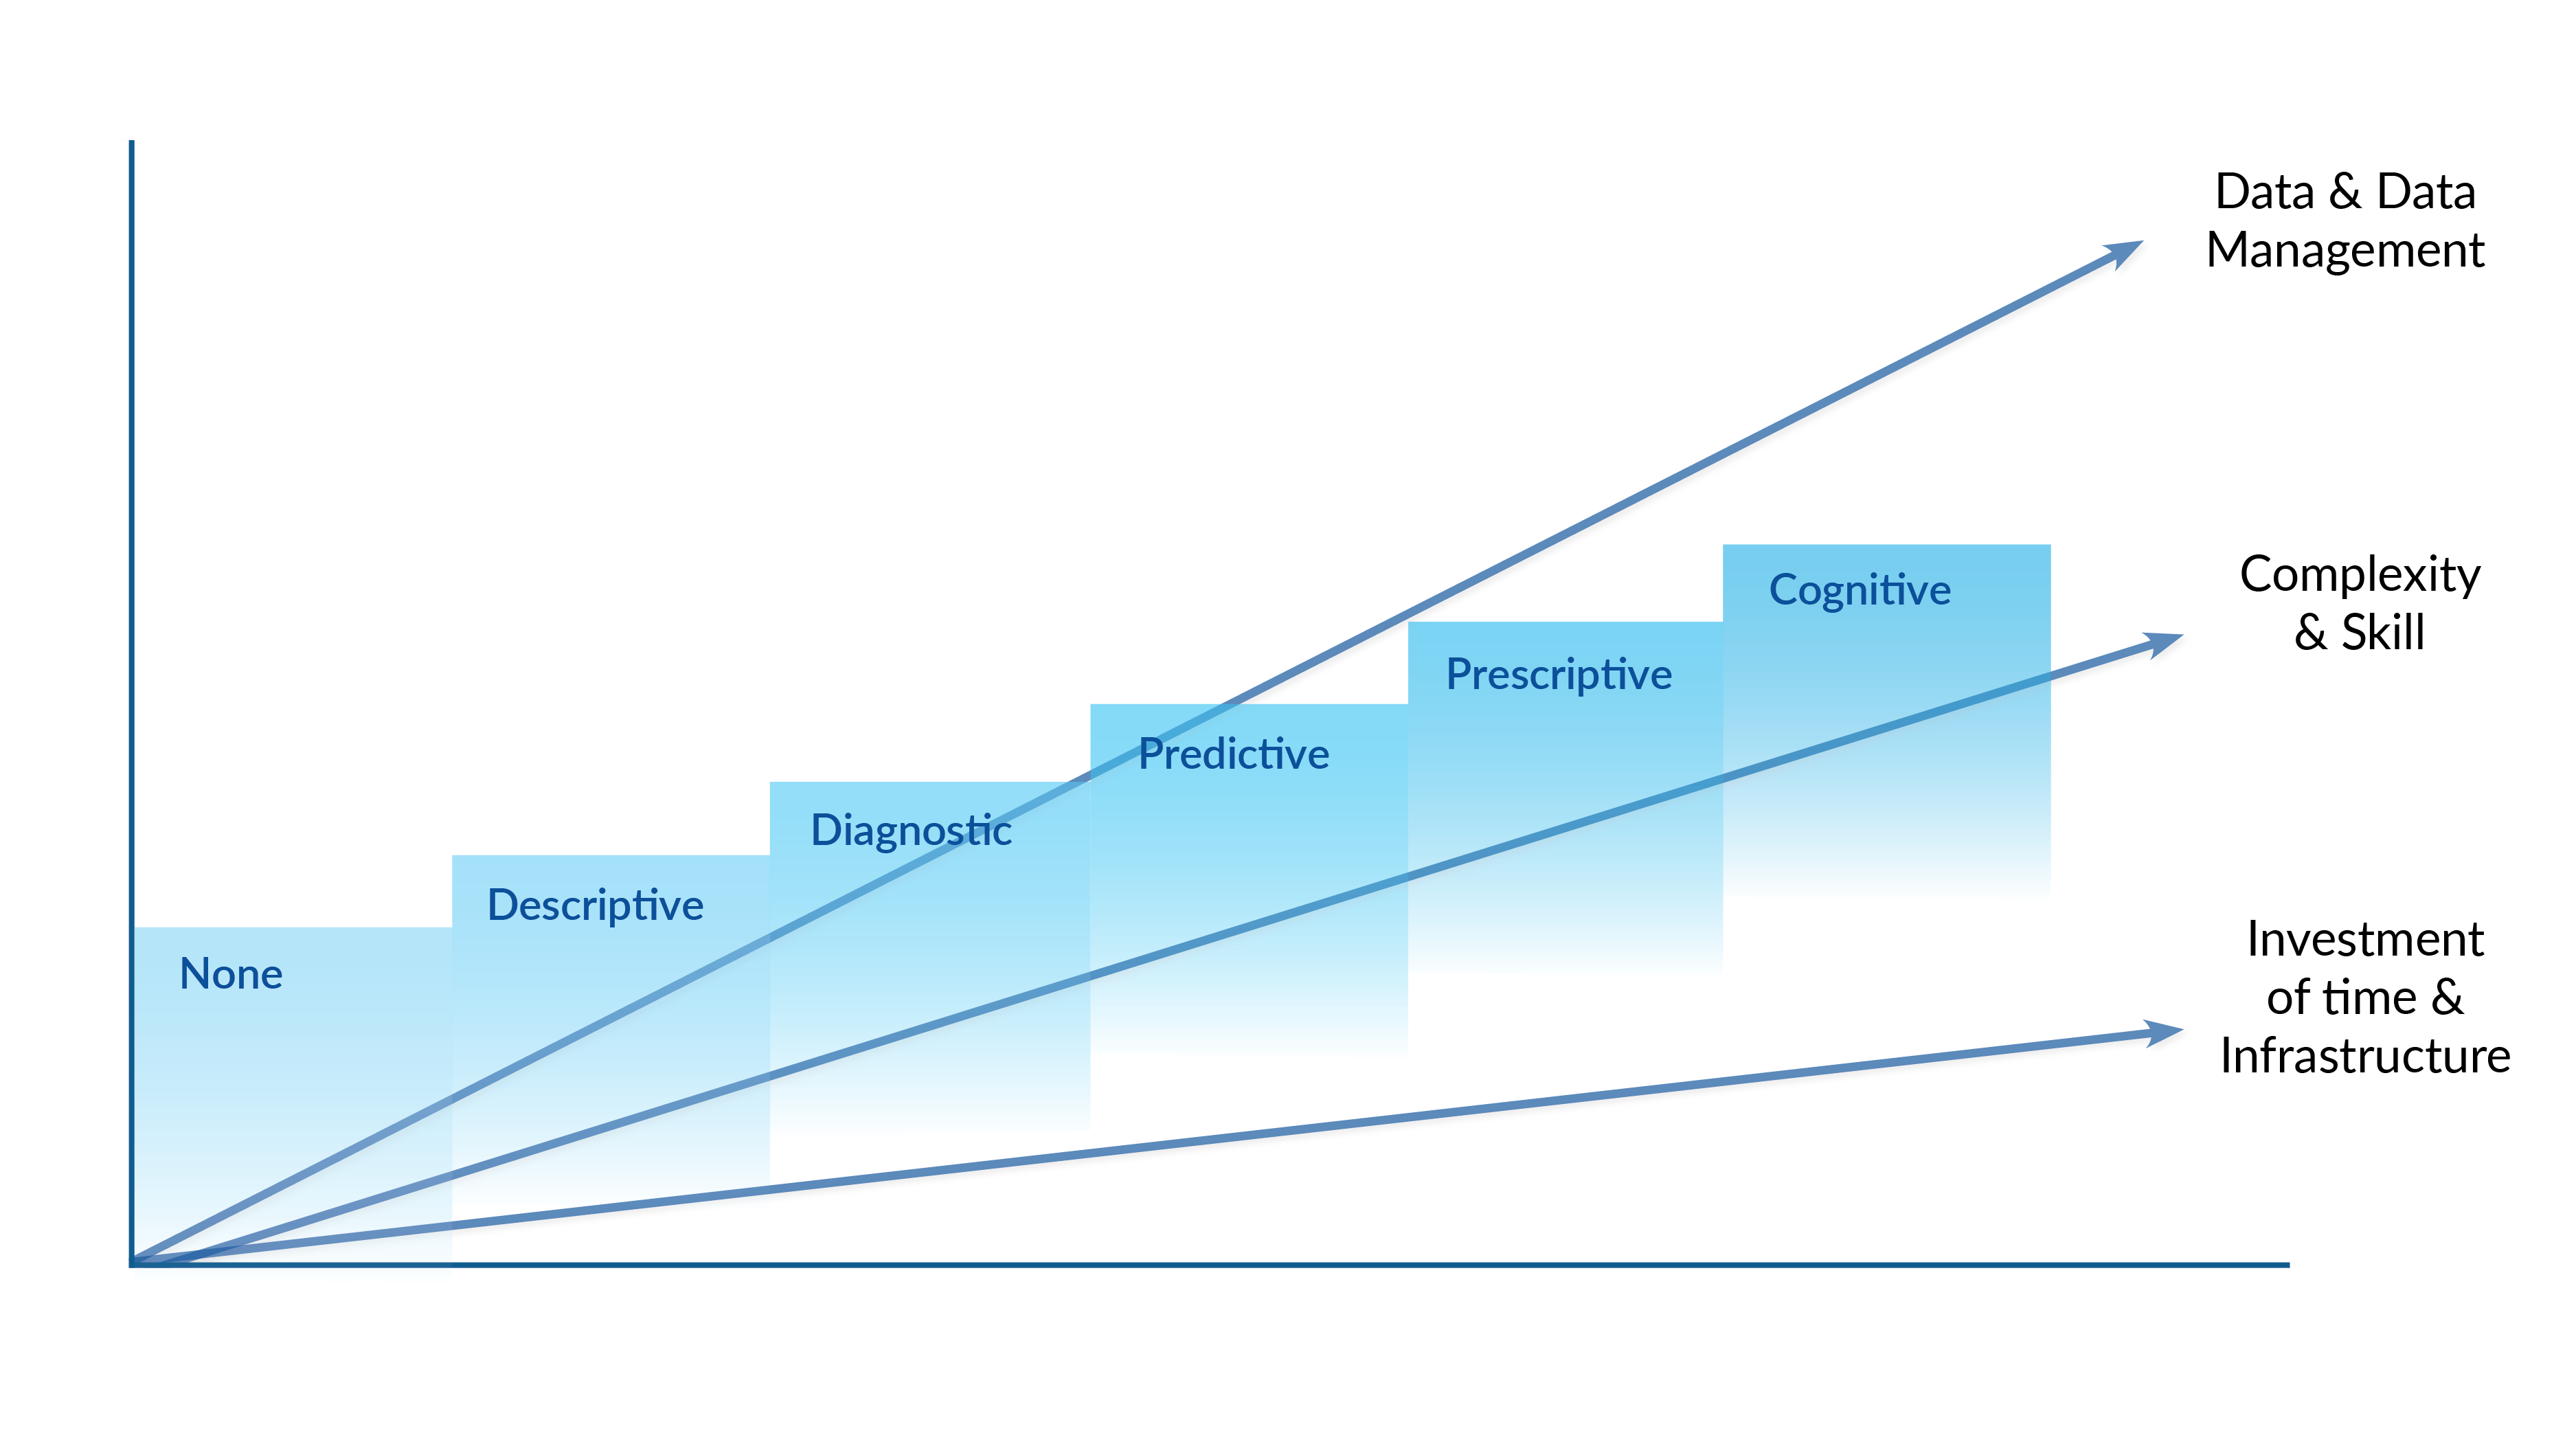 The levels of the data maturity model are descriptive, diagnostic, predictive, prescriptive, and cognitive. As an organization moves through this maturity scale, the investment of time and infrastructure, complexity and skill, and level of data and data management all increase.